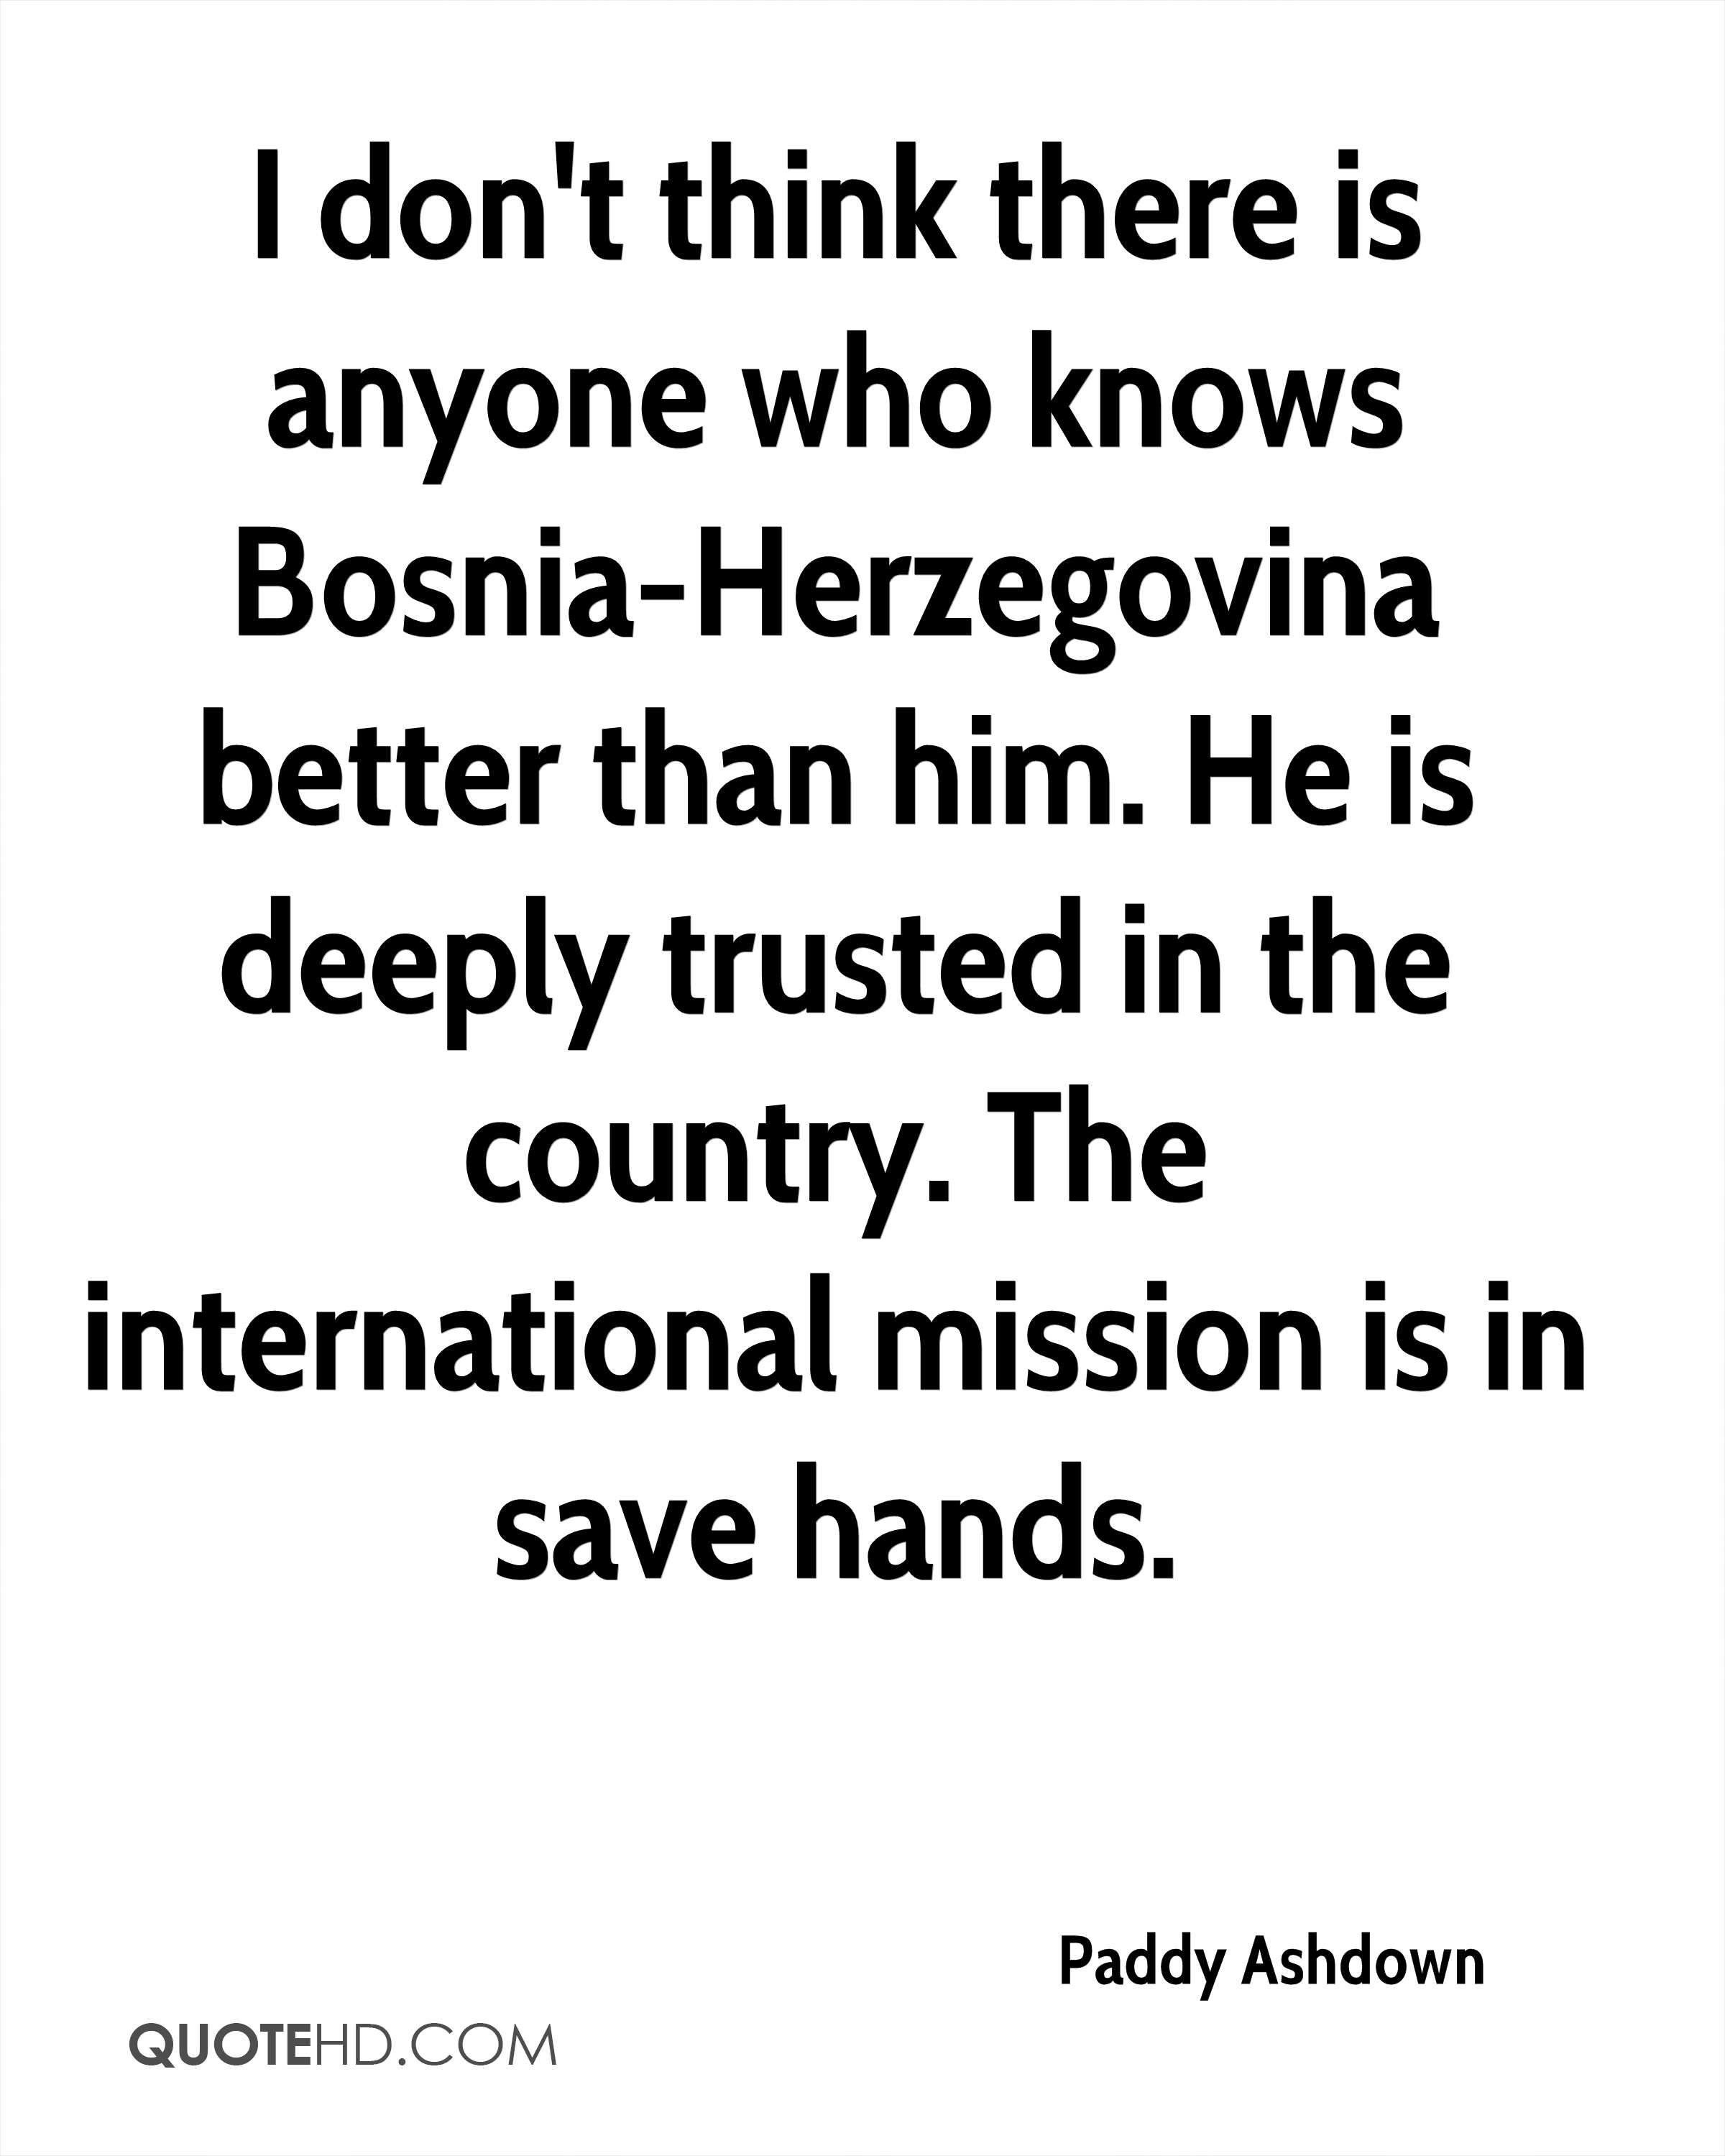 I don't think there is anyone who knows Bosnia-Herzegovina better than him. He is deeply trusted in the country. The international mission is in save hands.